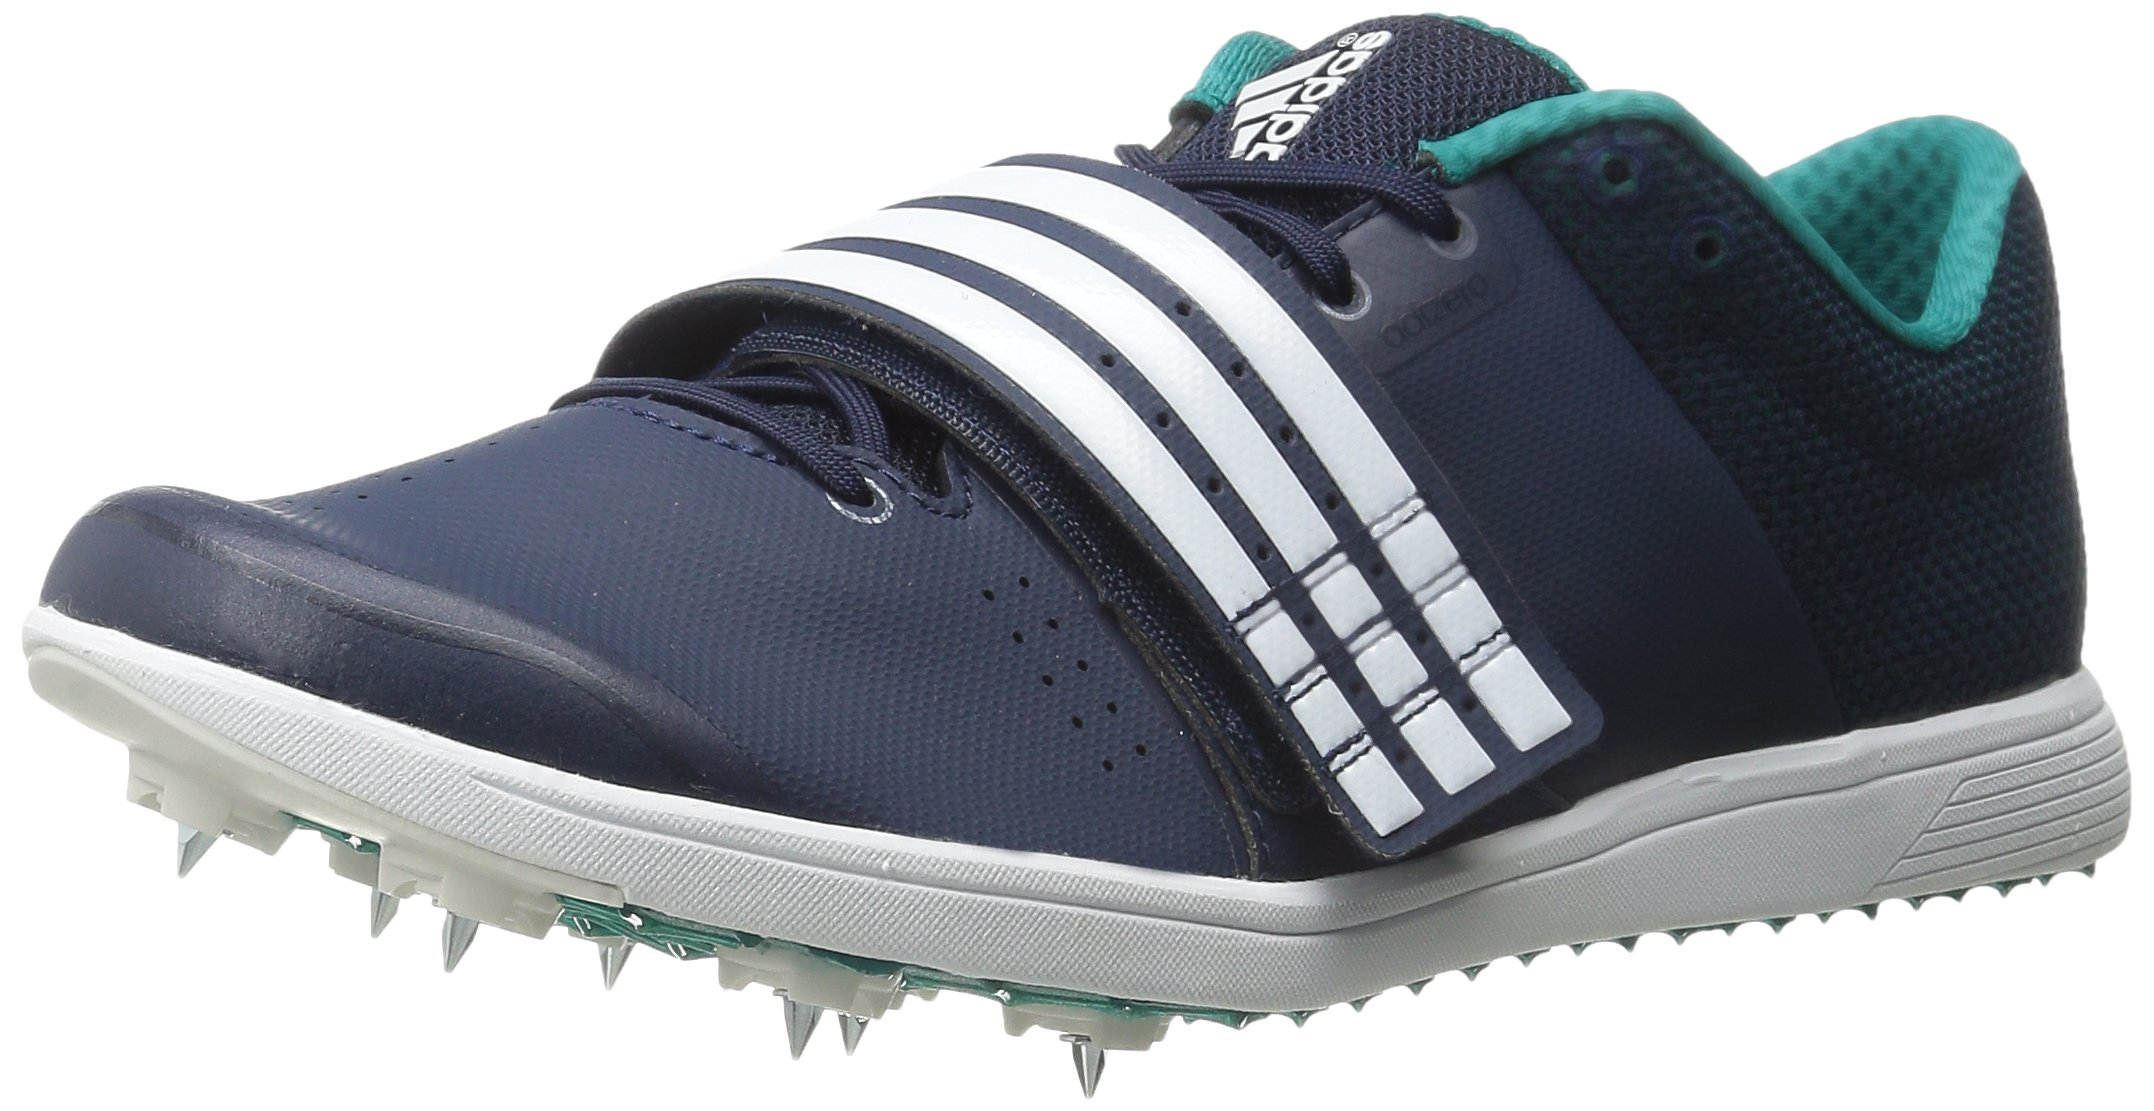 adidas Performance Women's Adizero TJ/PV Running Shoe with Spikes,Collegiate Navy/White/Green,14 M US by adidas (Image #1)